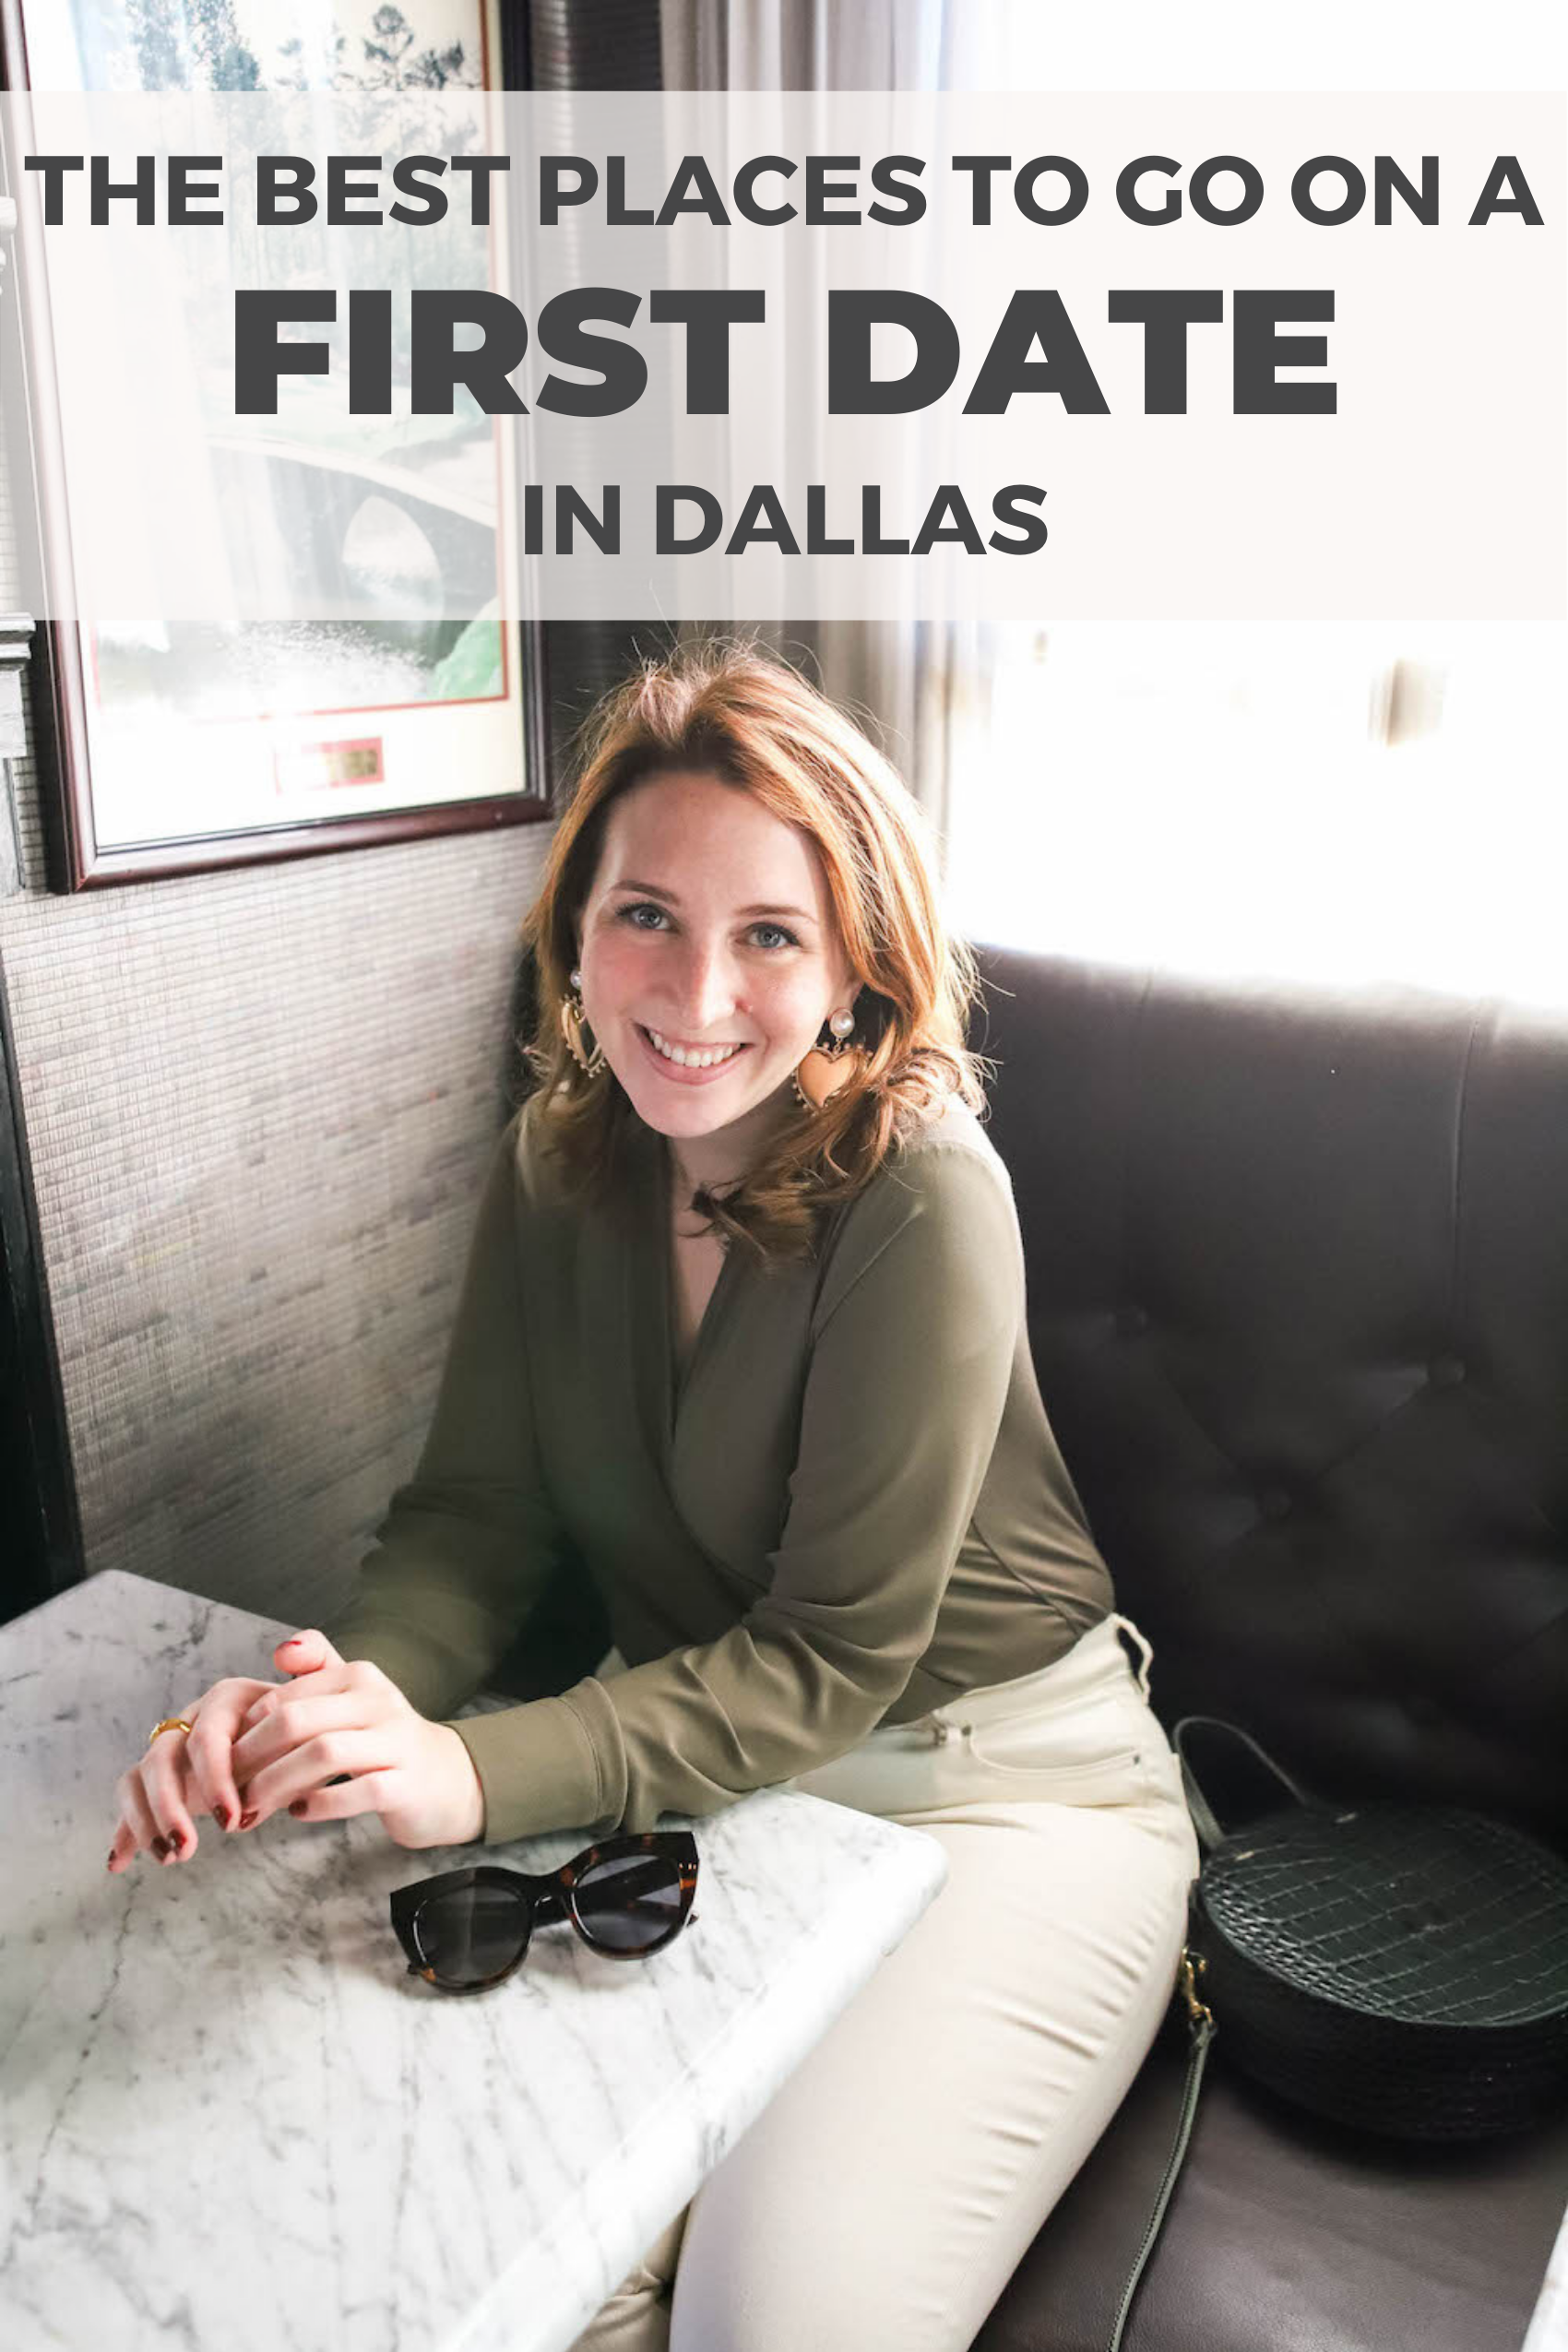 The best places to go on a first date in Dallas, TX graphic for Pinterest